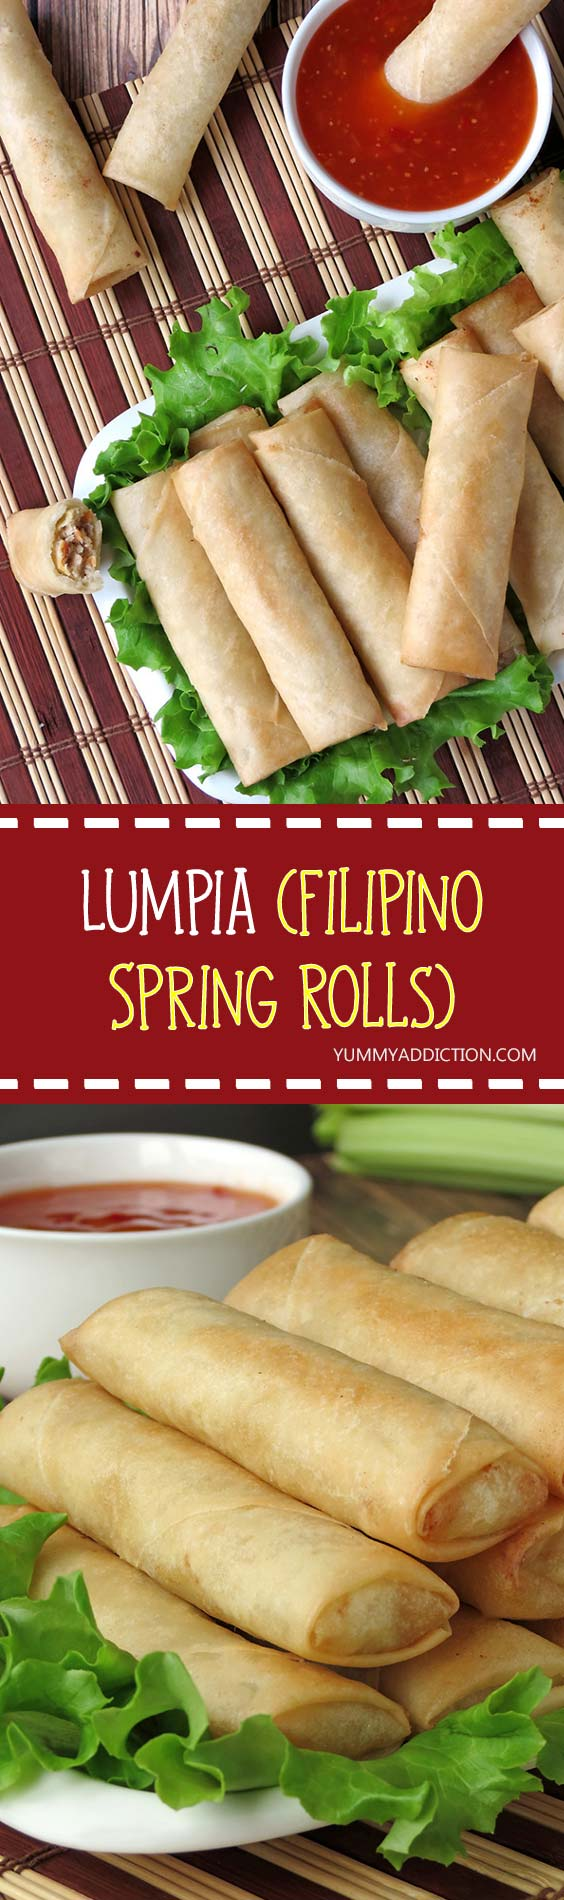 Lumpia (Filipino Spring Rolls) | YummyAddiction.com